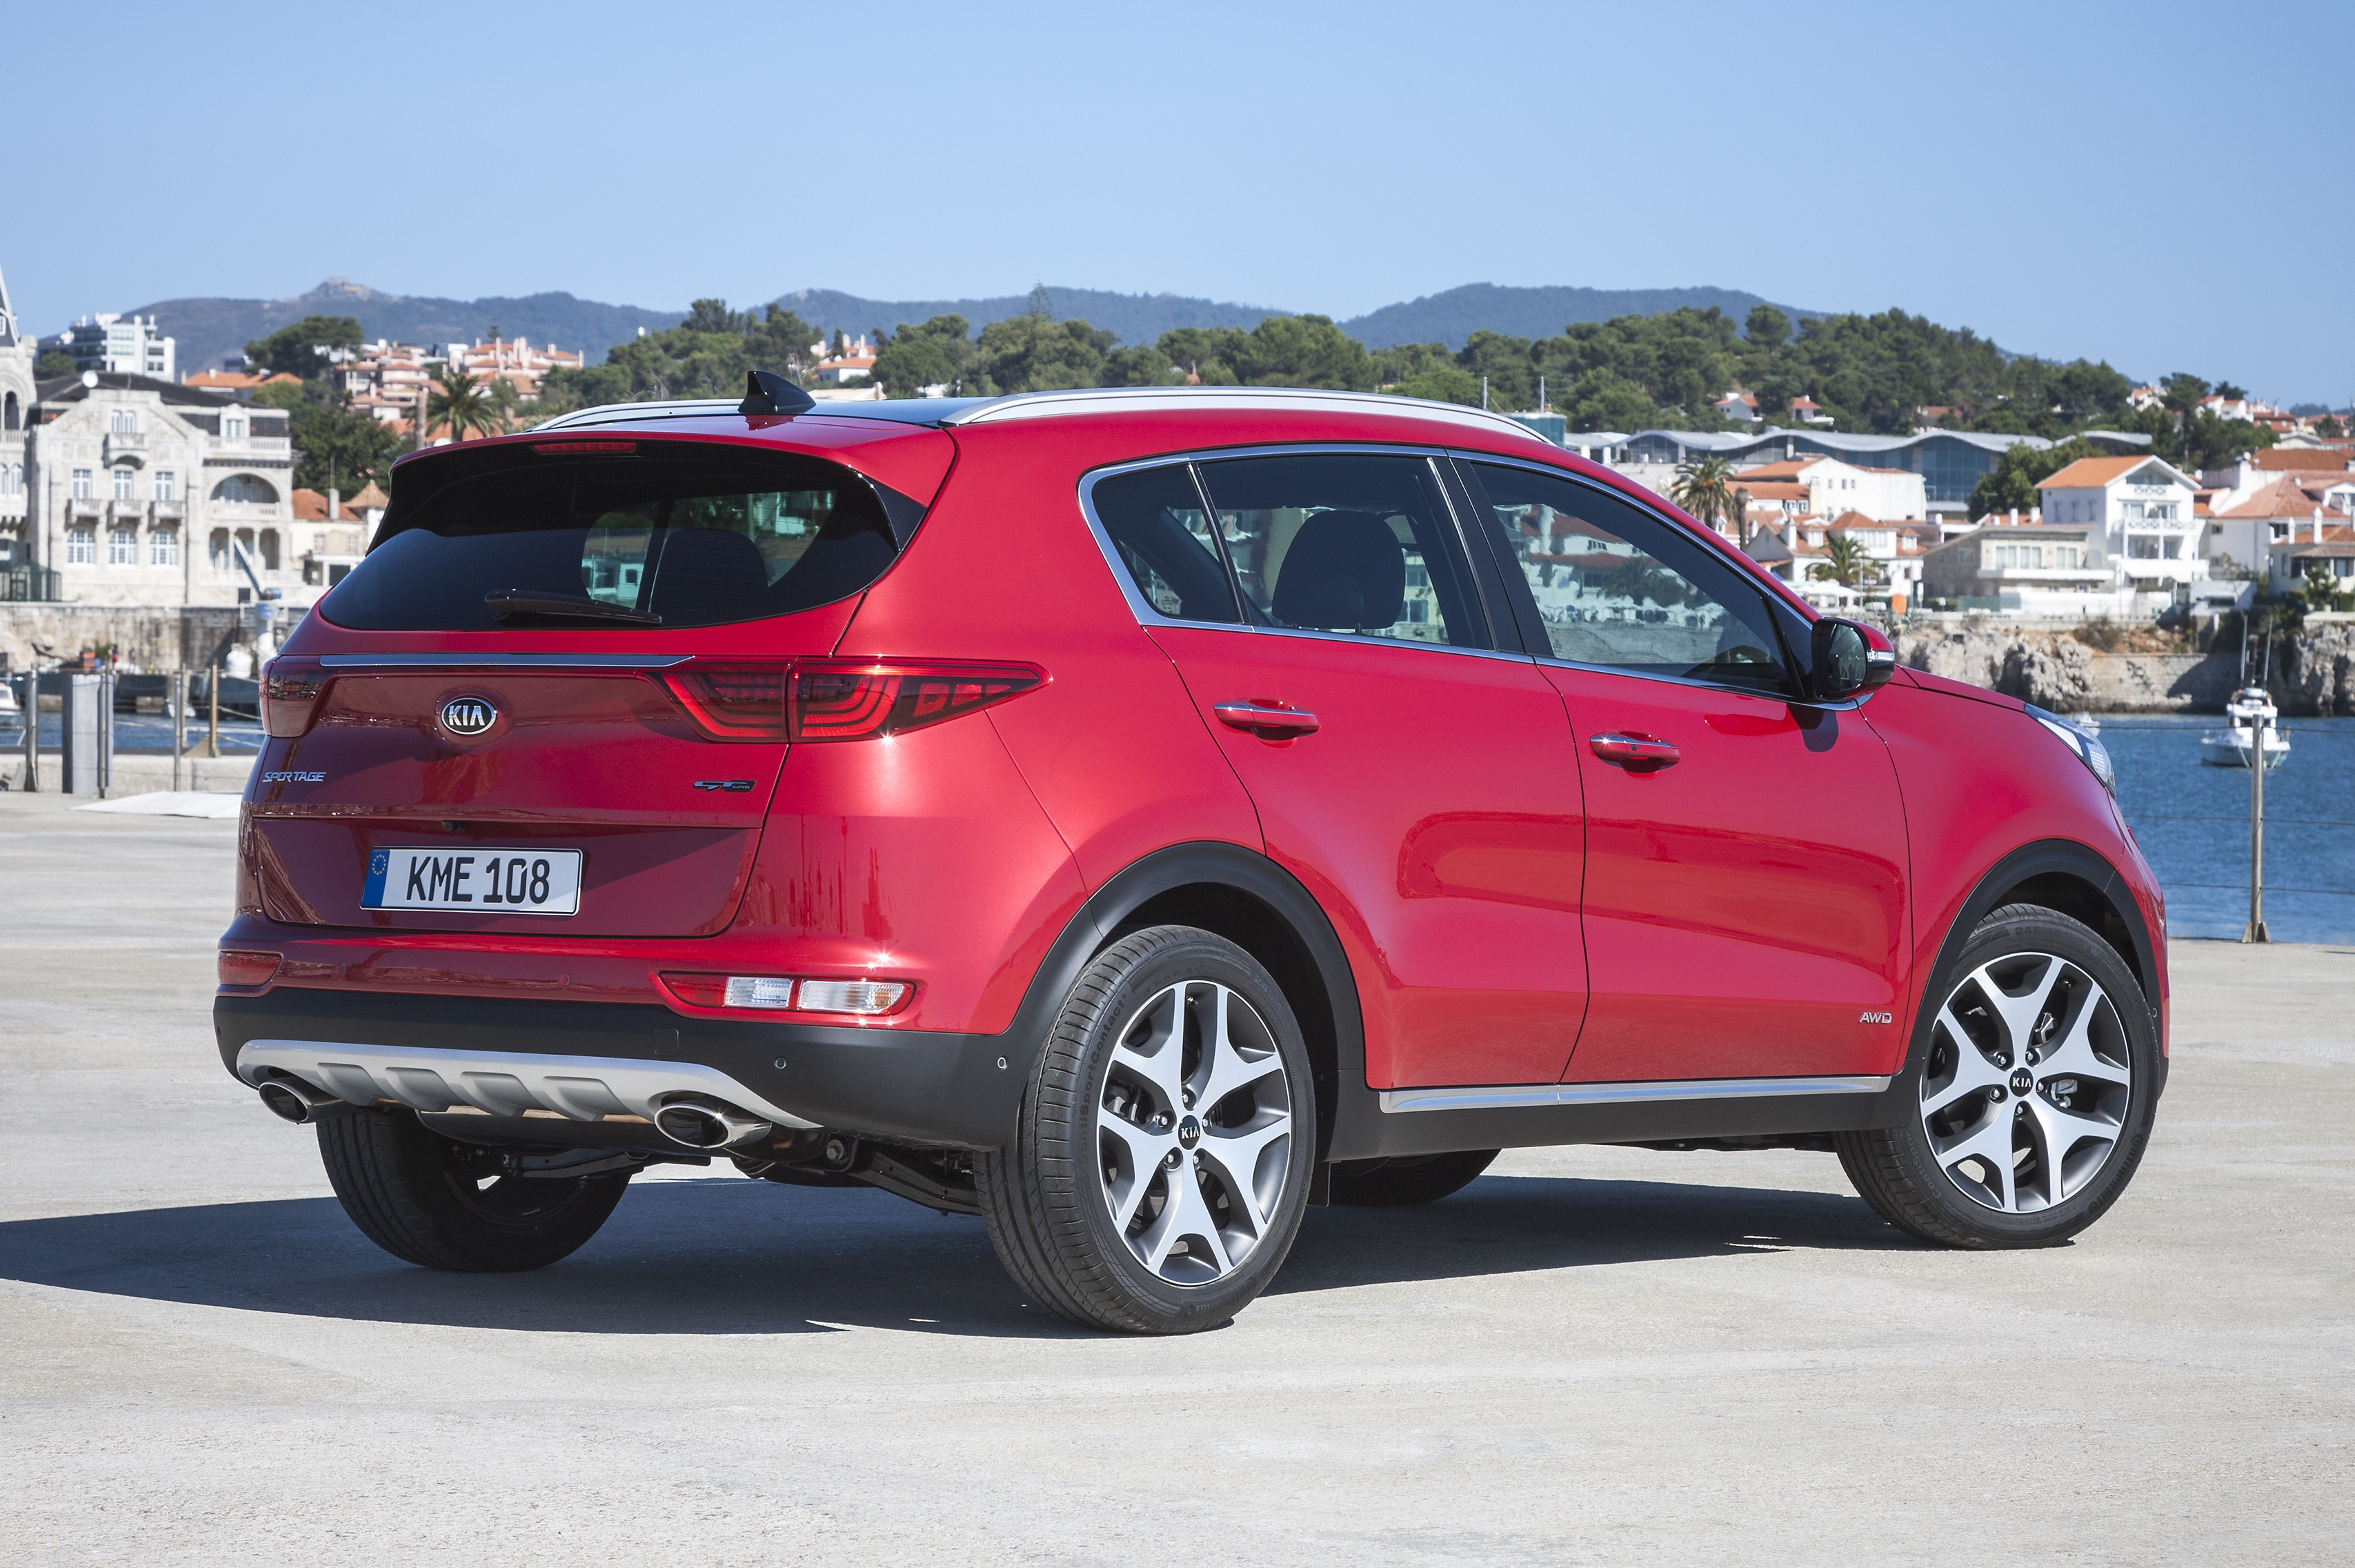 sportage kia and of here goodies lots lot comes the it is news new with a